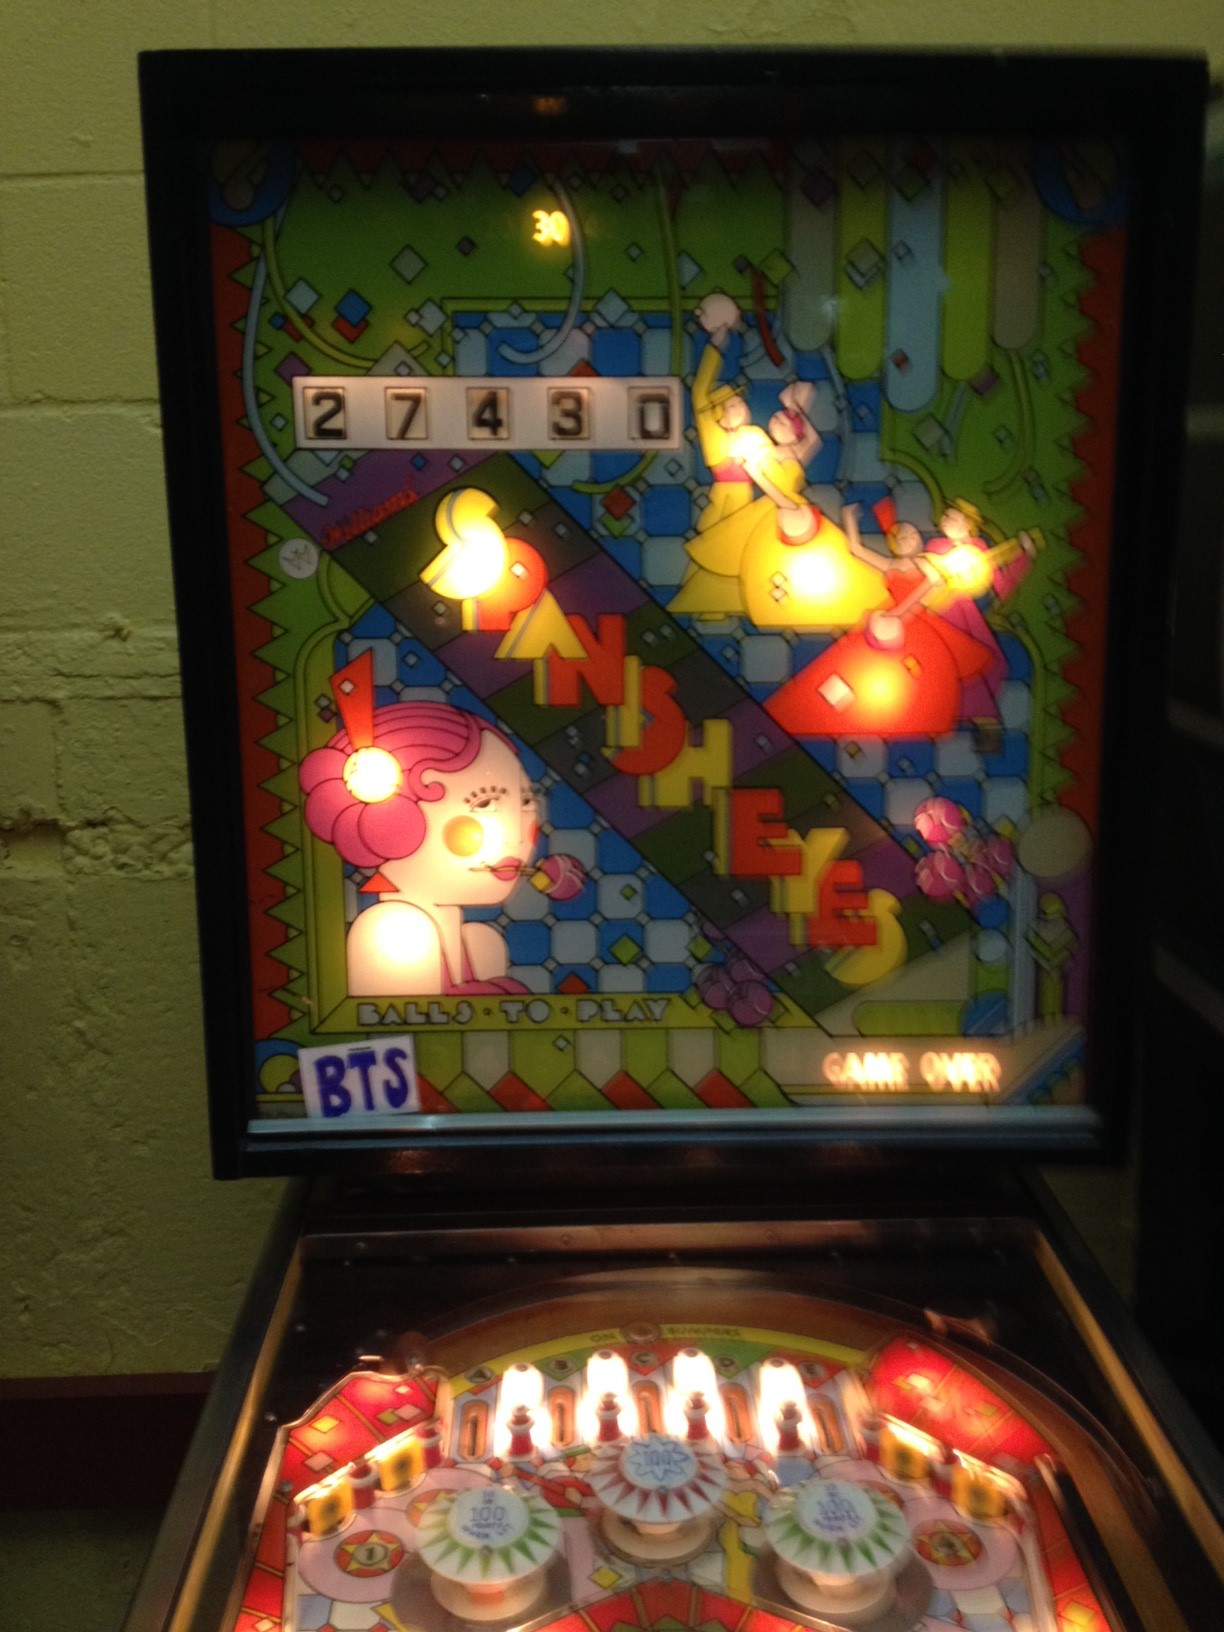 bensweeneyonbass: Spanish Eyes (Pinball: 5 Balls) 27,430 points on 2016-03-21 09:02:15